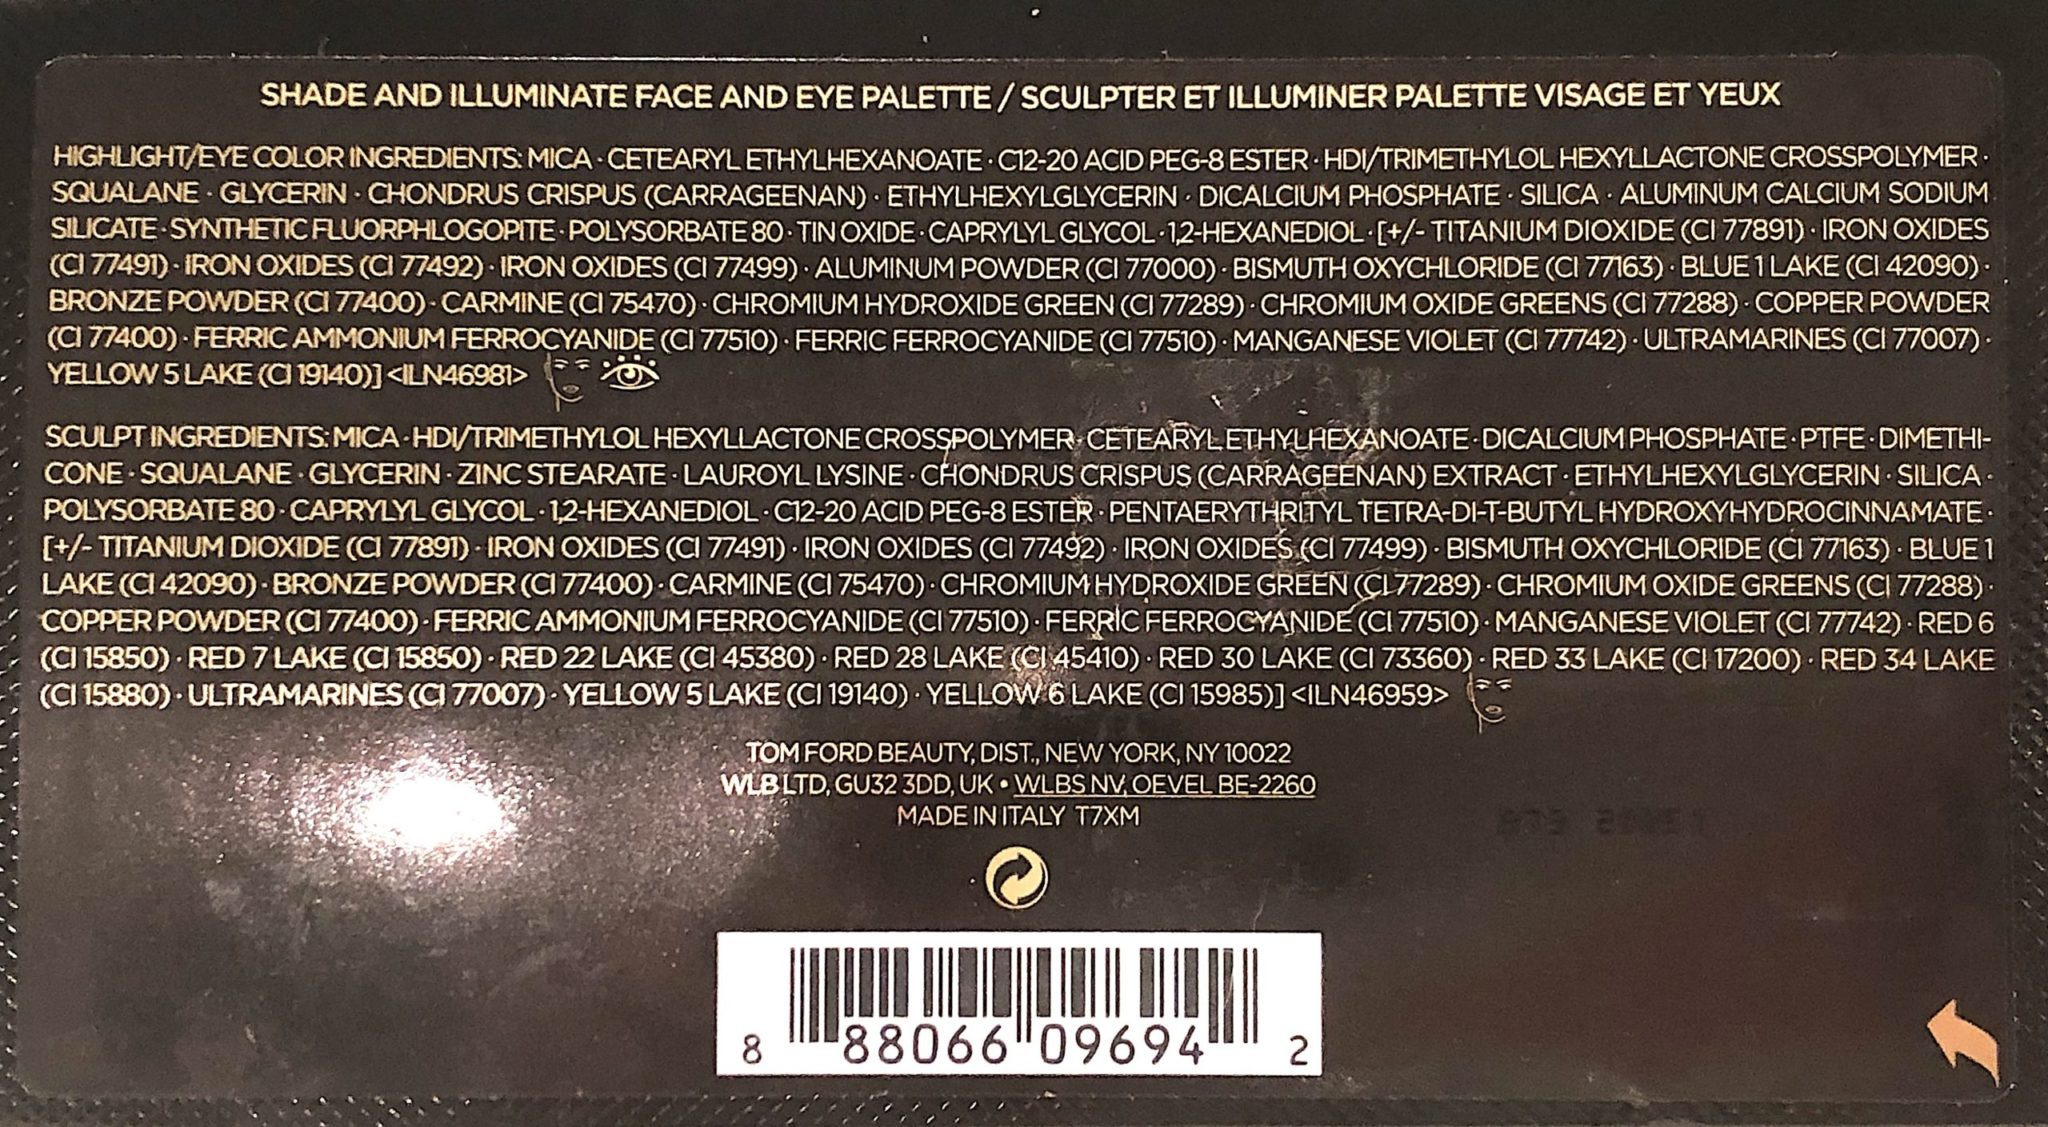 SHADE & ILLUMINATE FACE & EYE PALETTE 2020 INGREDIENTS FOR MOONLIT/VIOLET INTENSITY 2